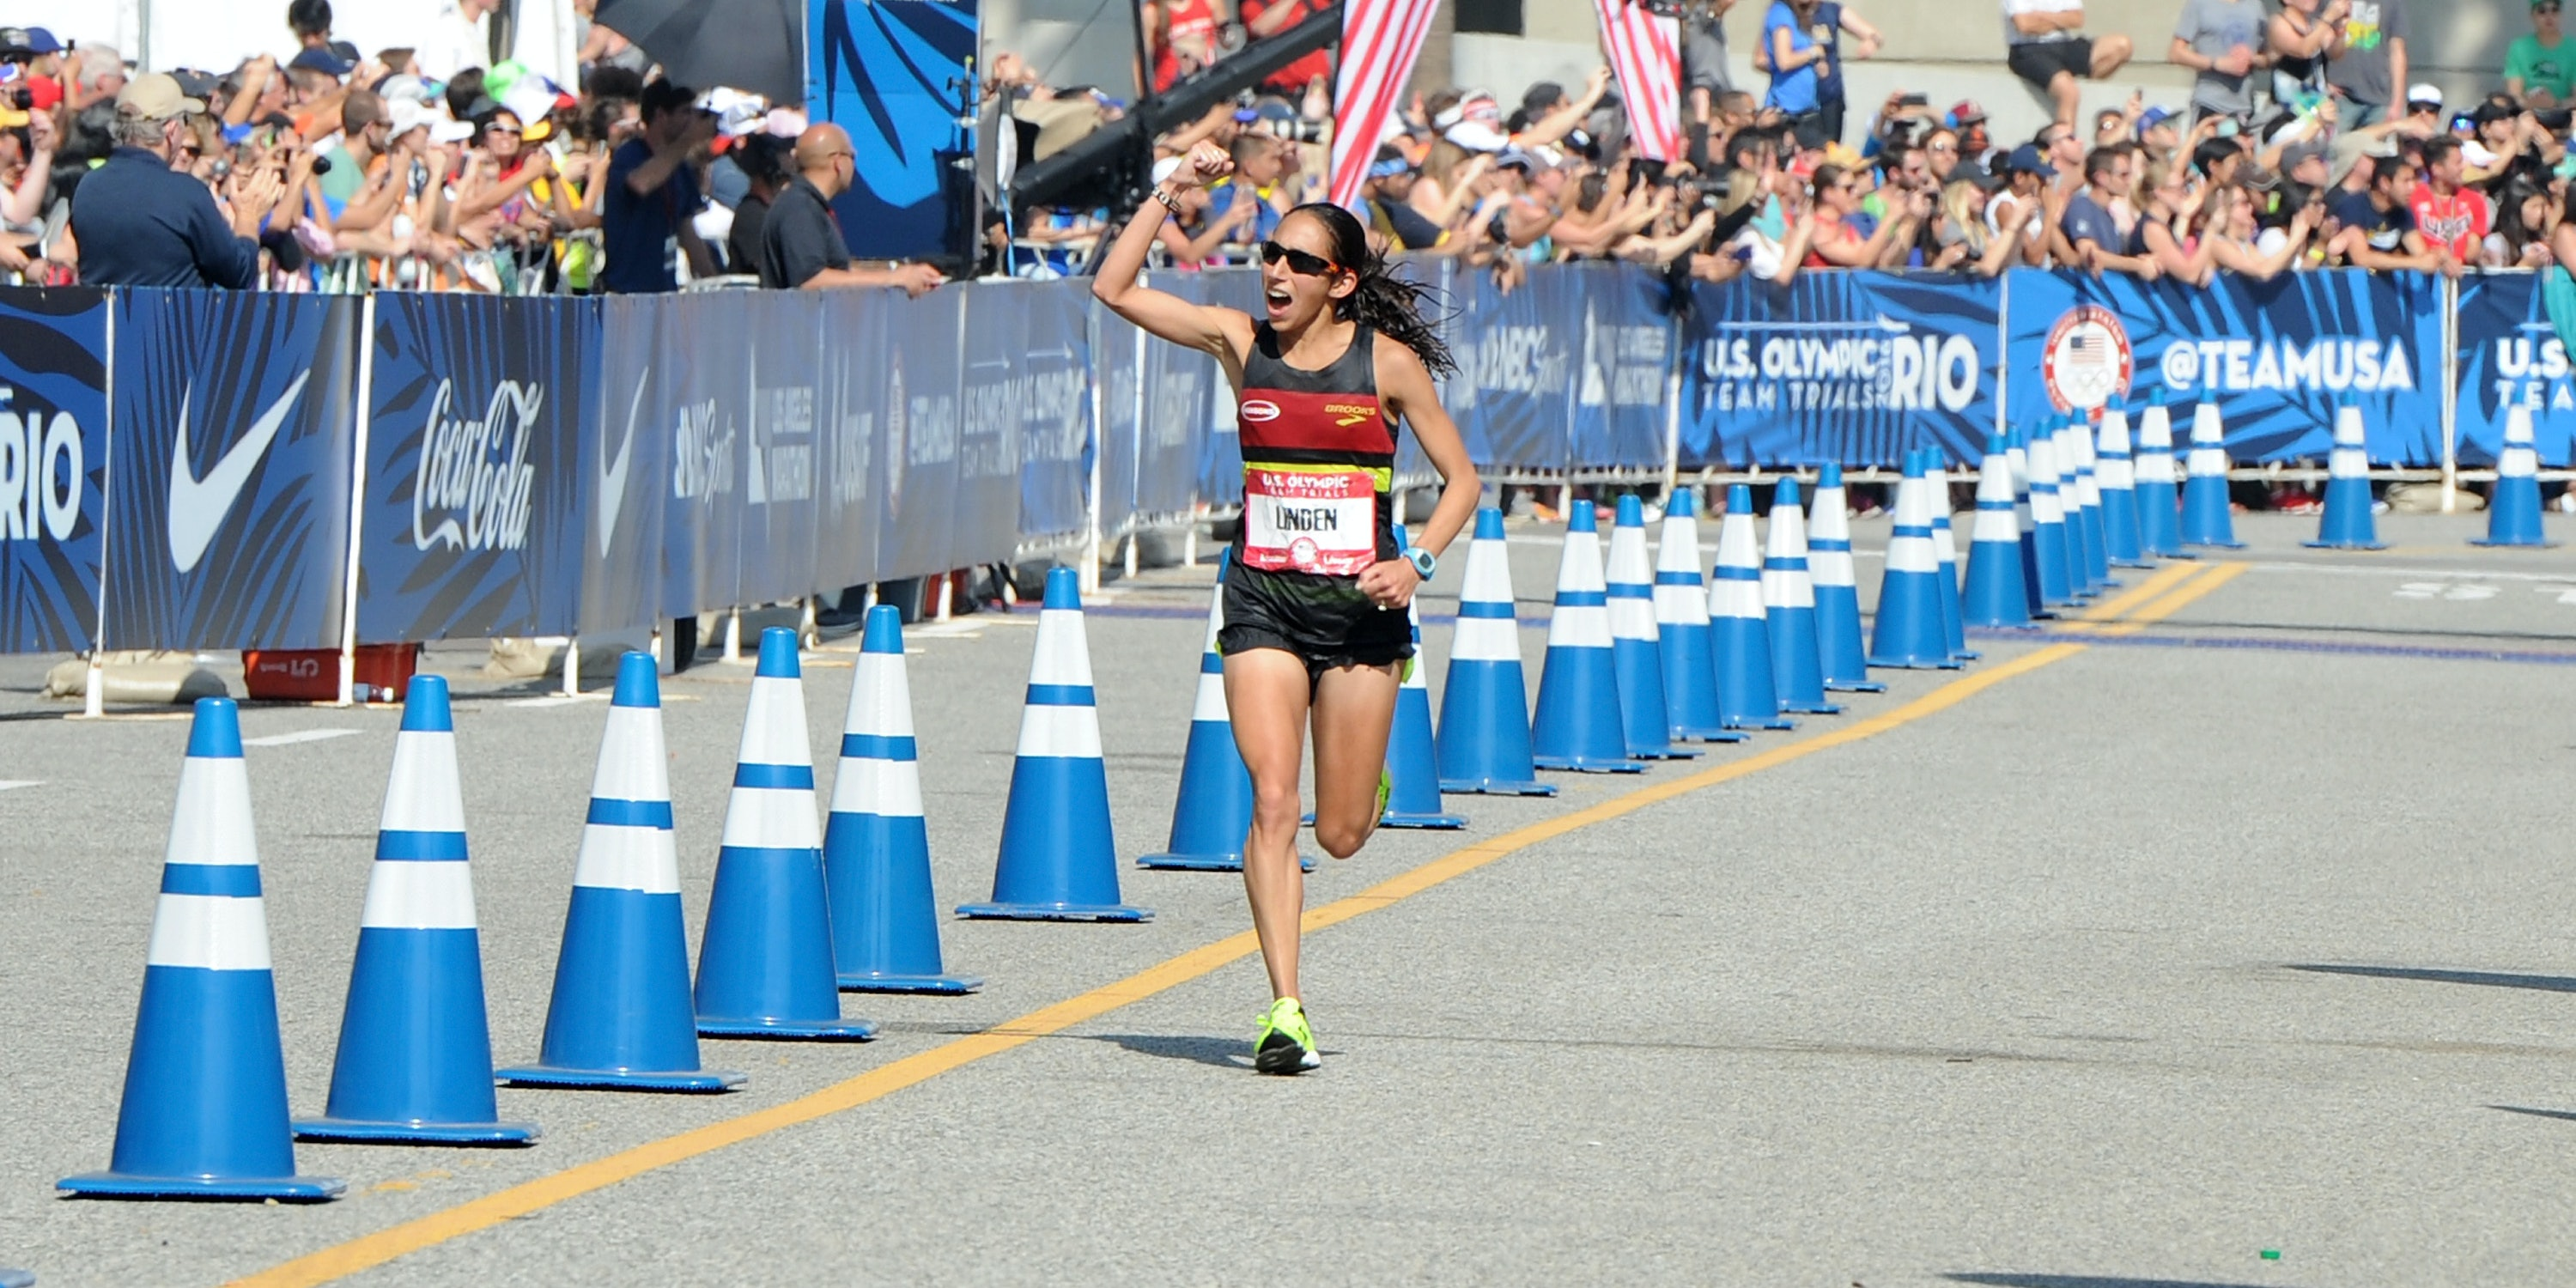 Desiree Linden finishes second in the U.S. Olympic Team Trials Women's Marathon on February 13, 2016 in Los Angeles, California.